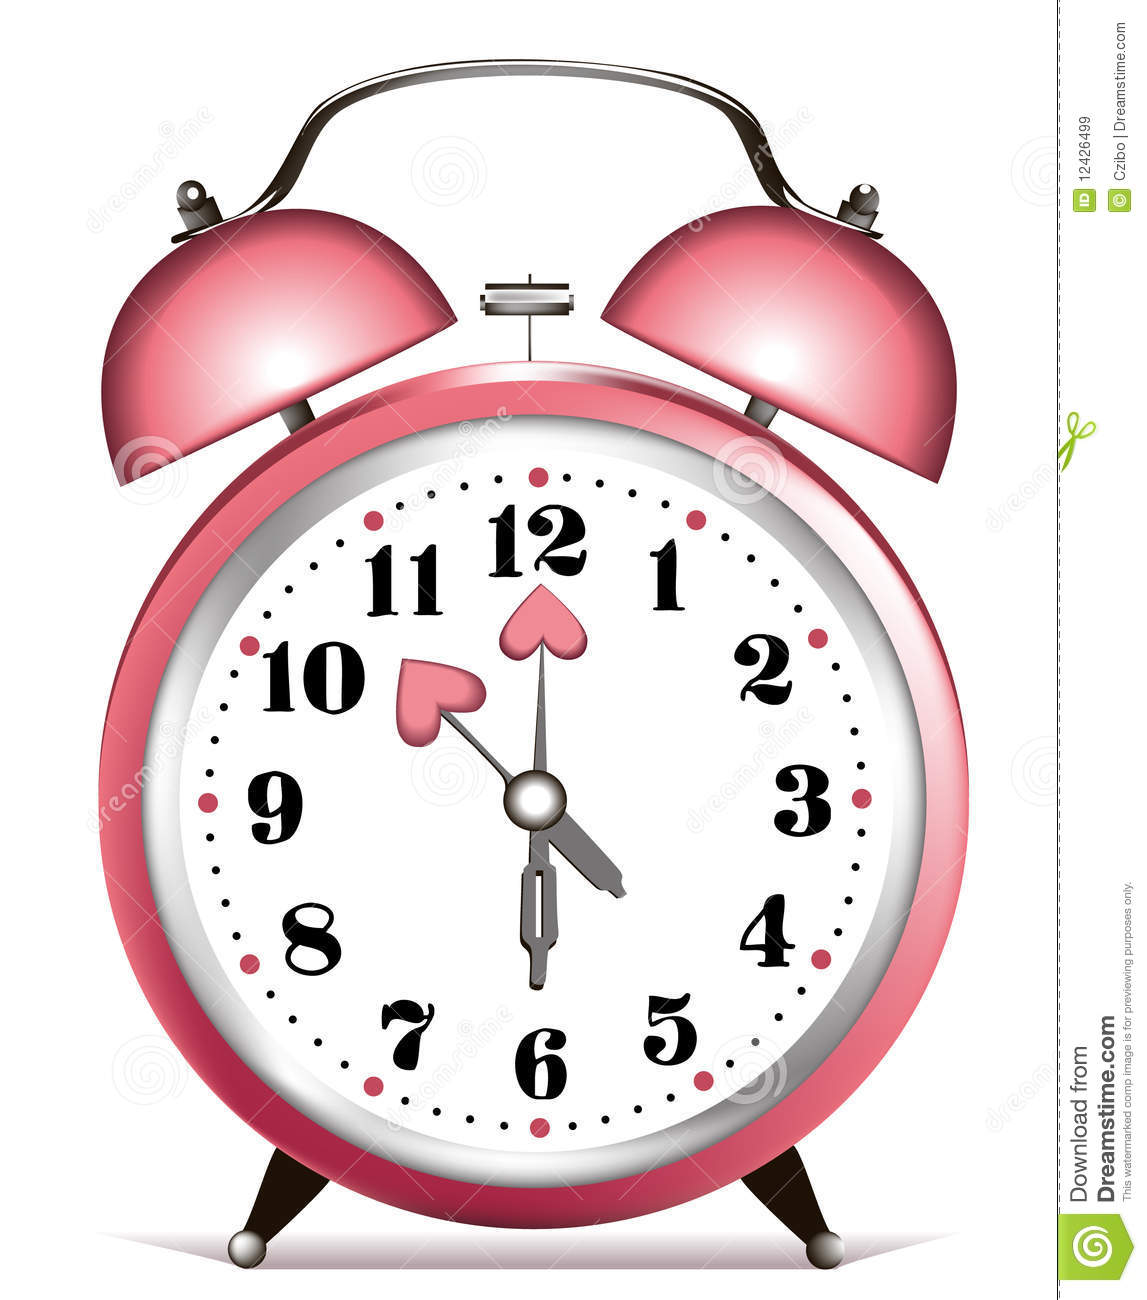 Valentine Alarm Clock Royalty Free Stock Images - Image: 12426499